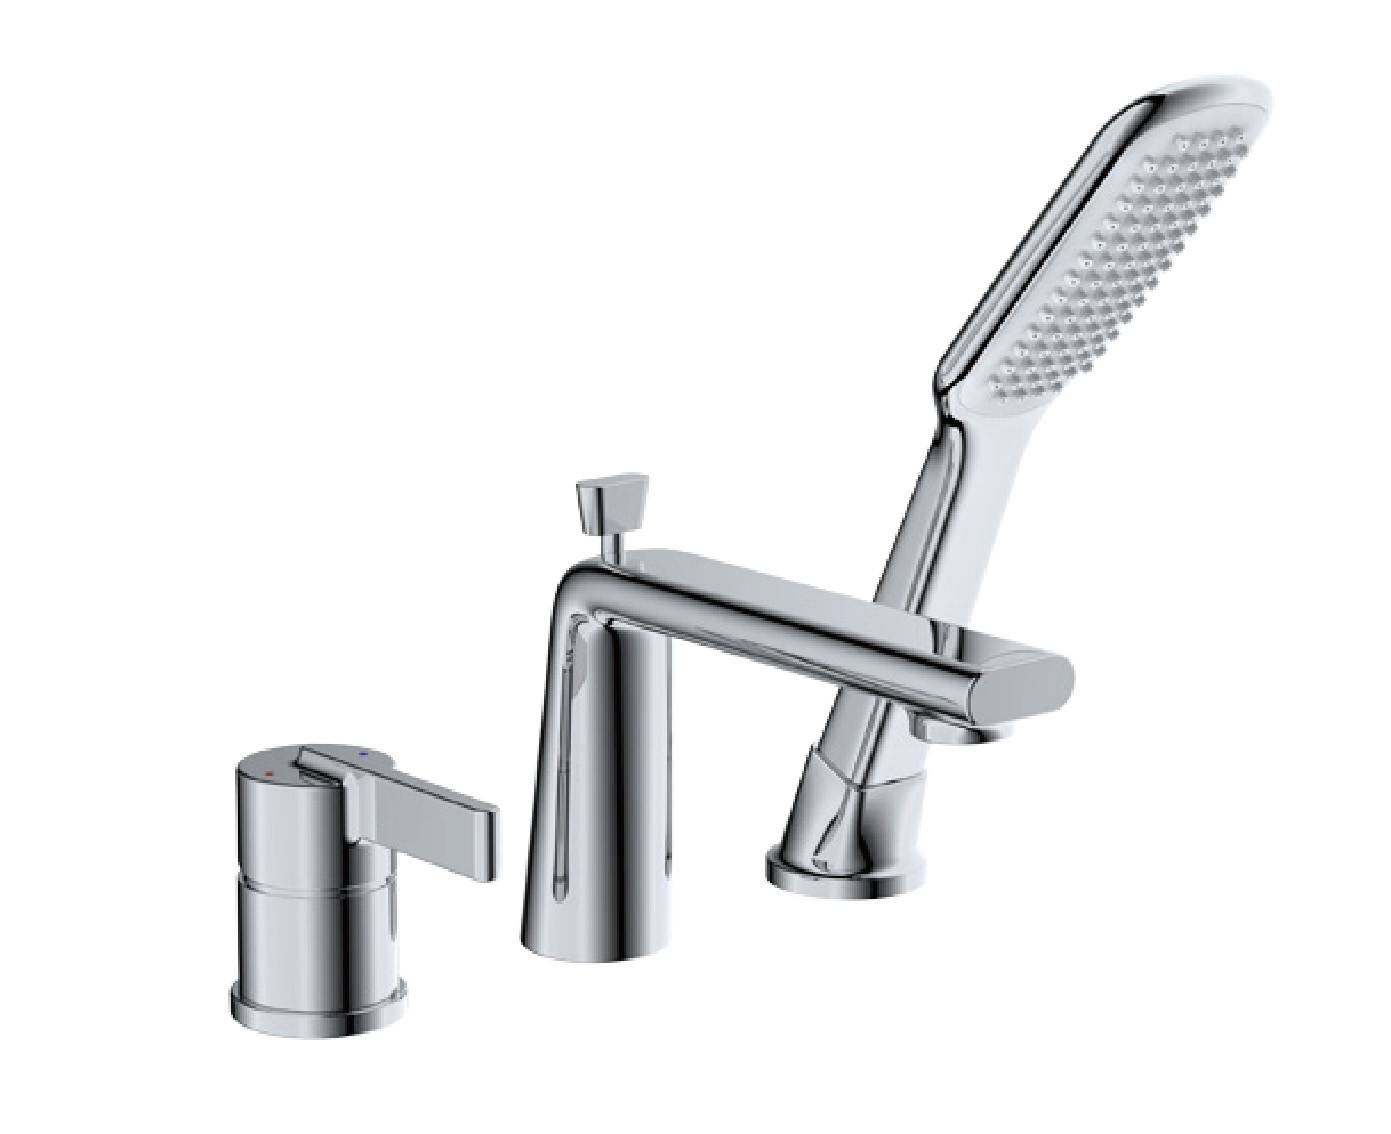 Contemporary chrome brass bathroom bathtub mixer tap